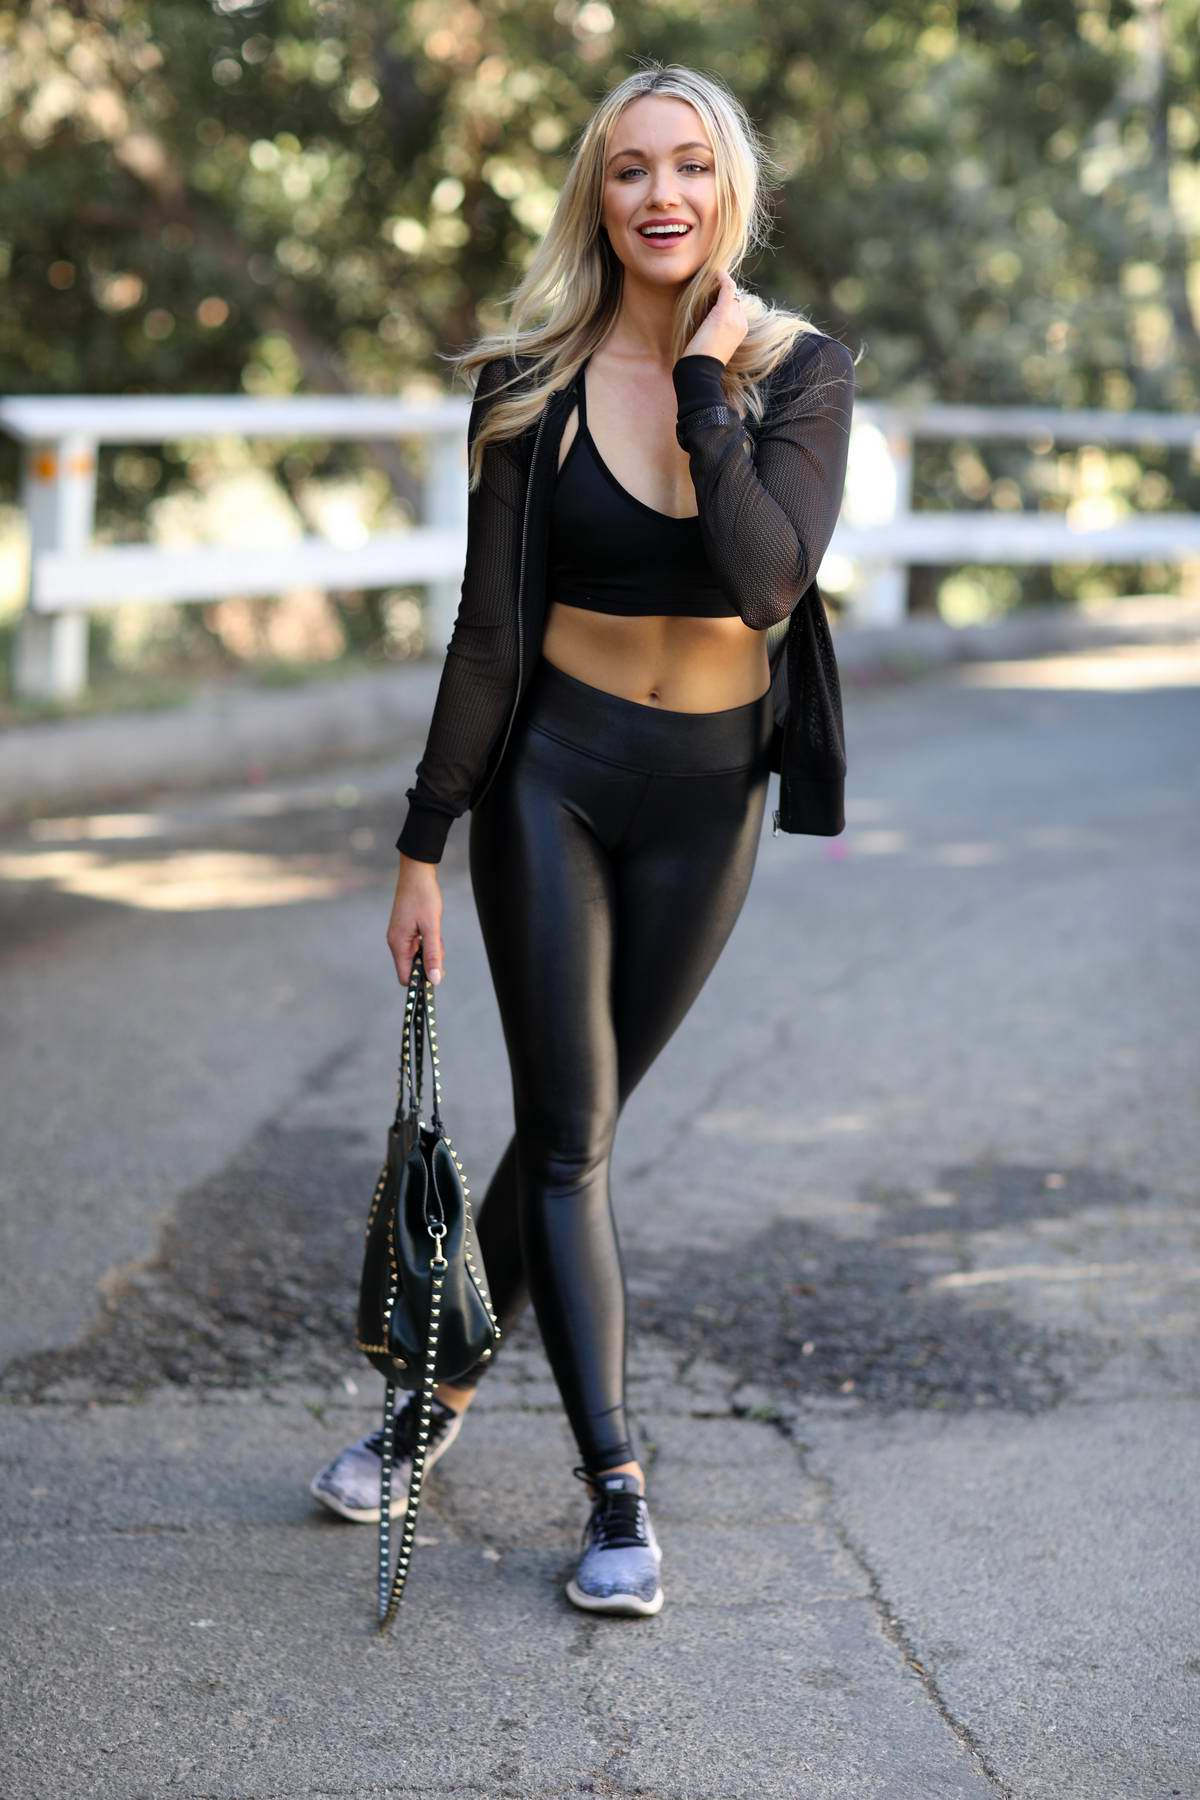 Katrina Bowden in 'My Activewear Brands Favorites List' photoshoot for her blog